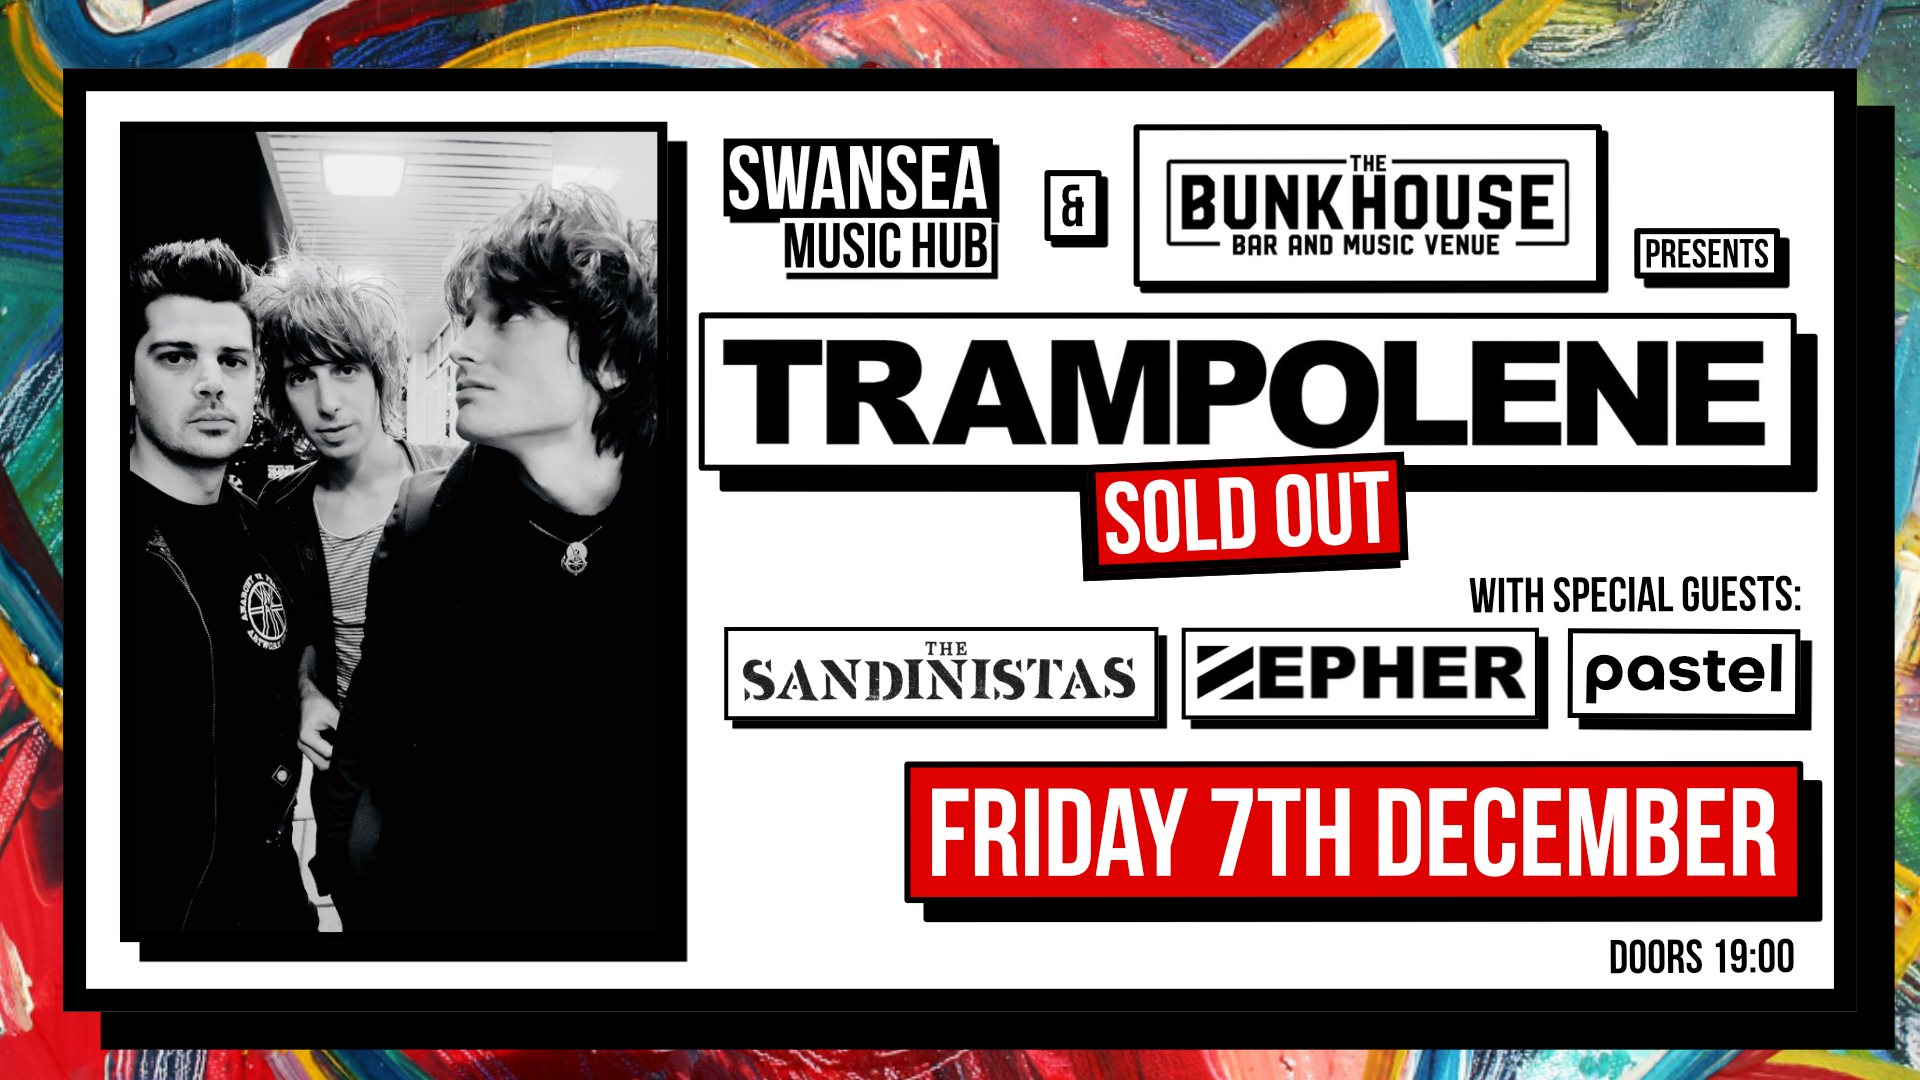 SMH Trampolene Banner SOLD OUT.jpg